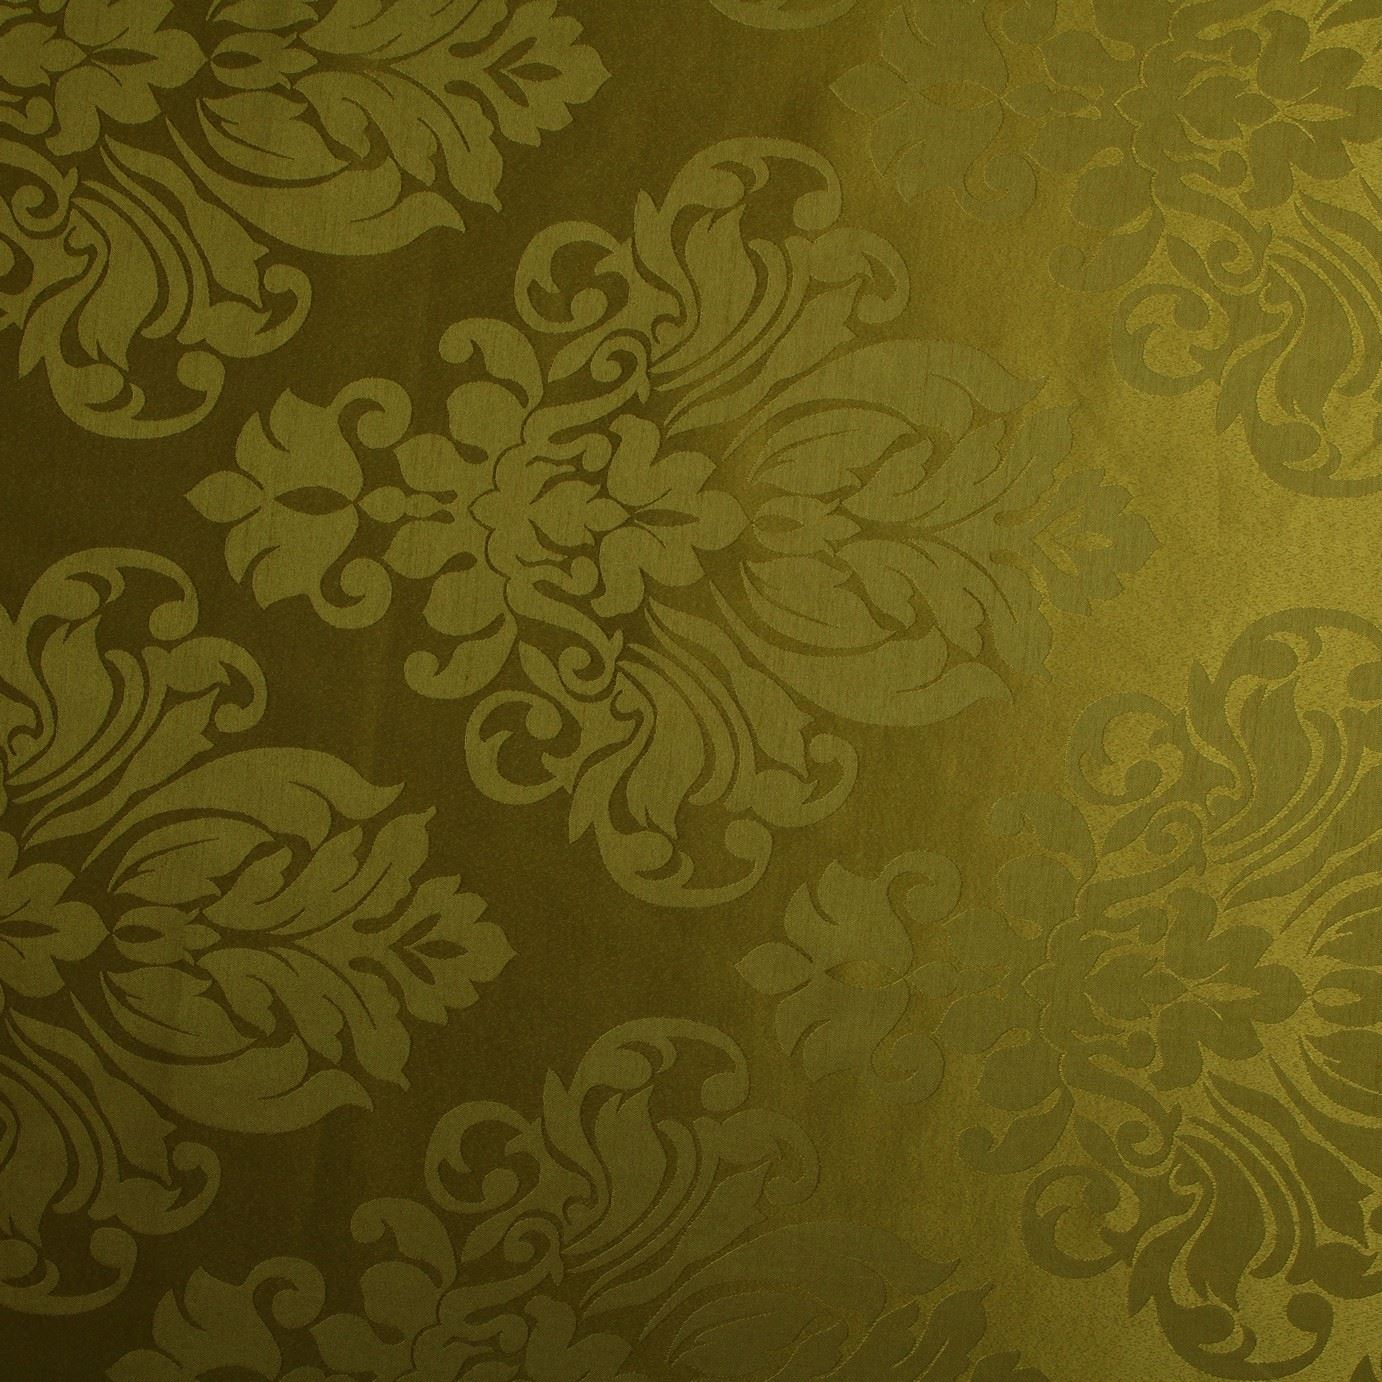 Upholstery Fabric Of Floral Damask Faux Silk Jacquard Curtain Upholstery Fabric